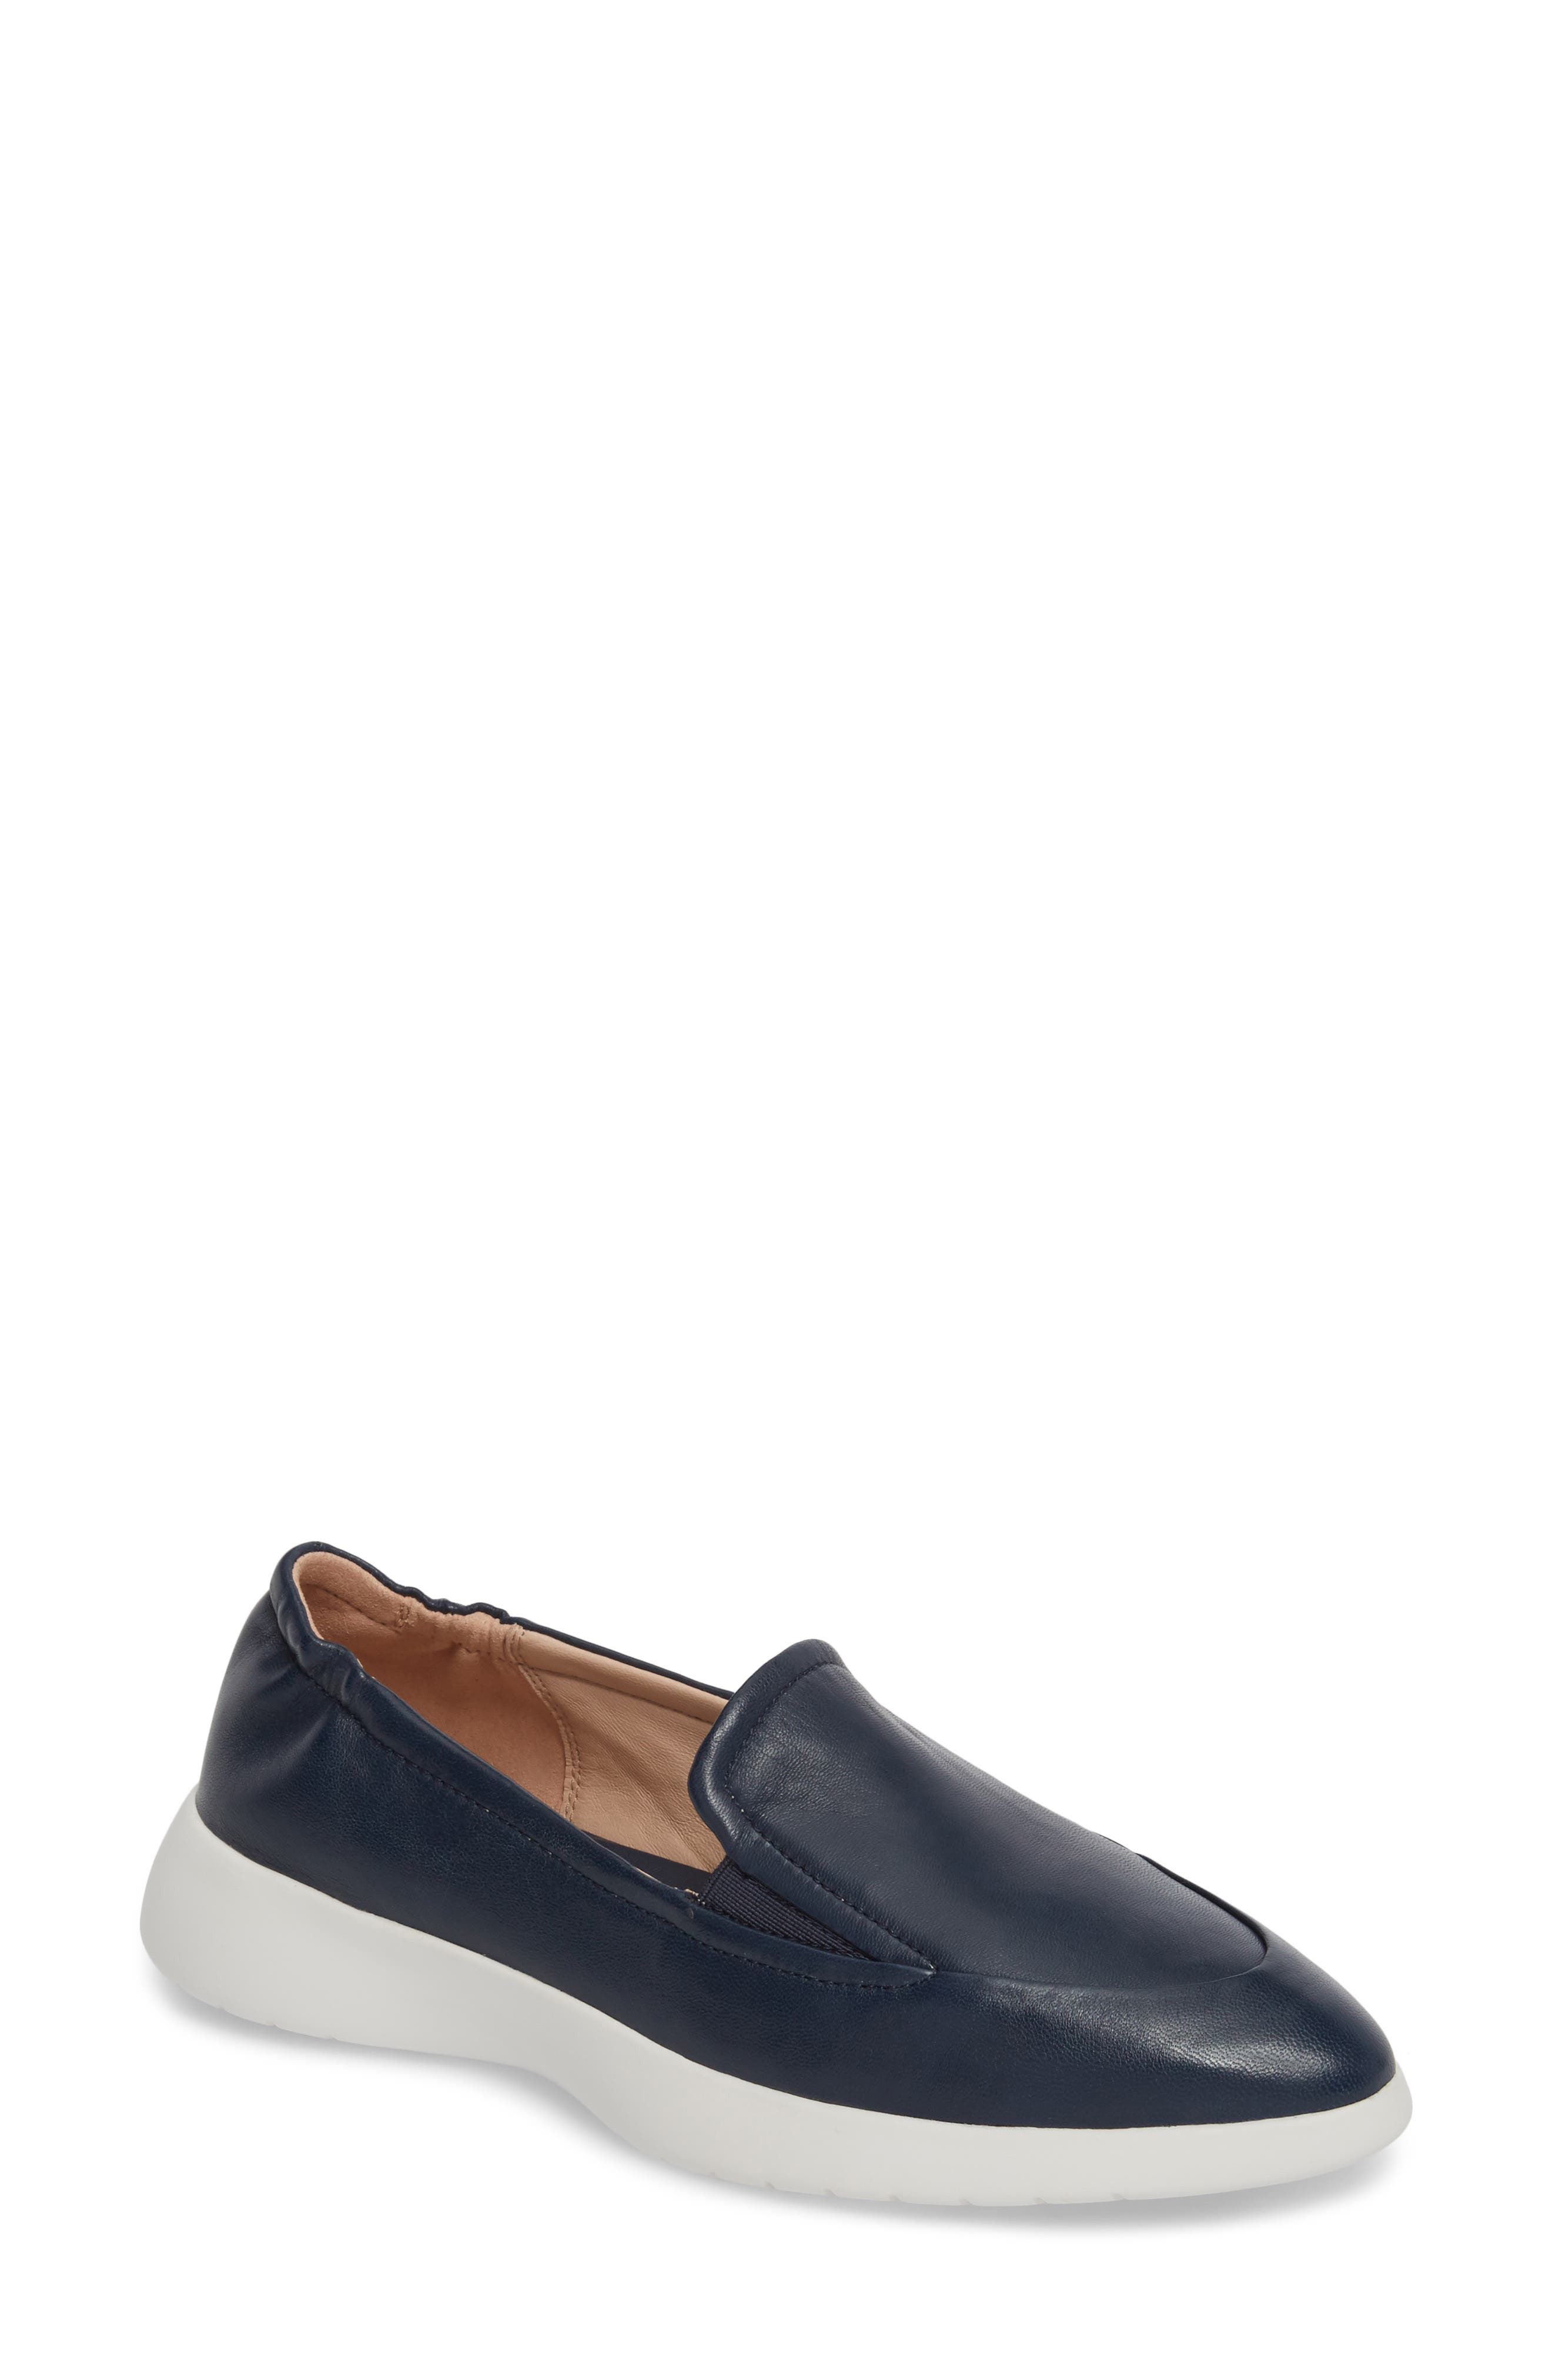 Dana Loafer Sneaker,                             Main thumbnail 1, color,                             Navy Leather